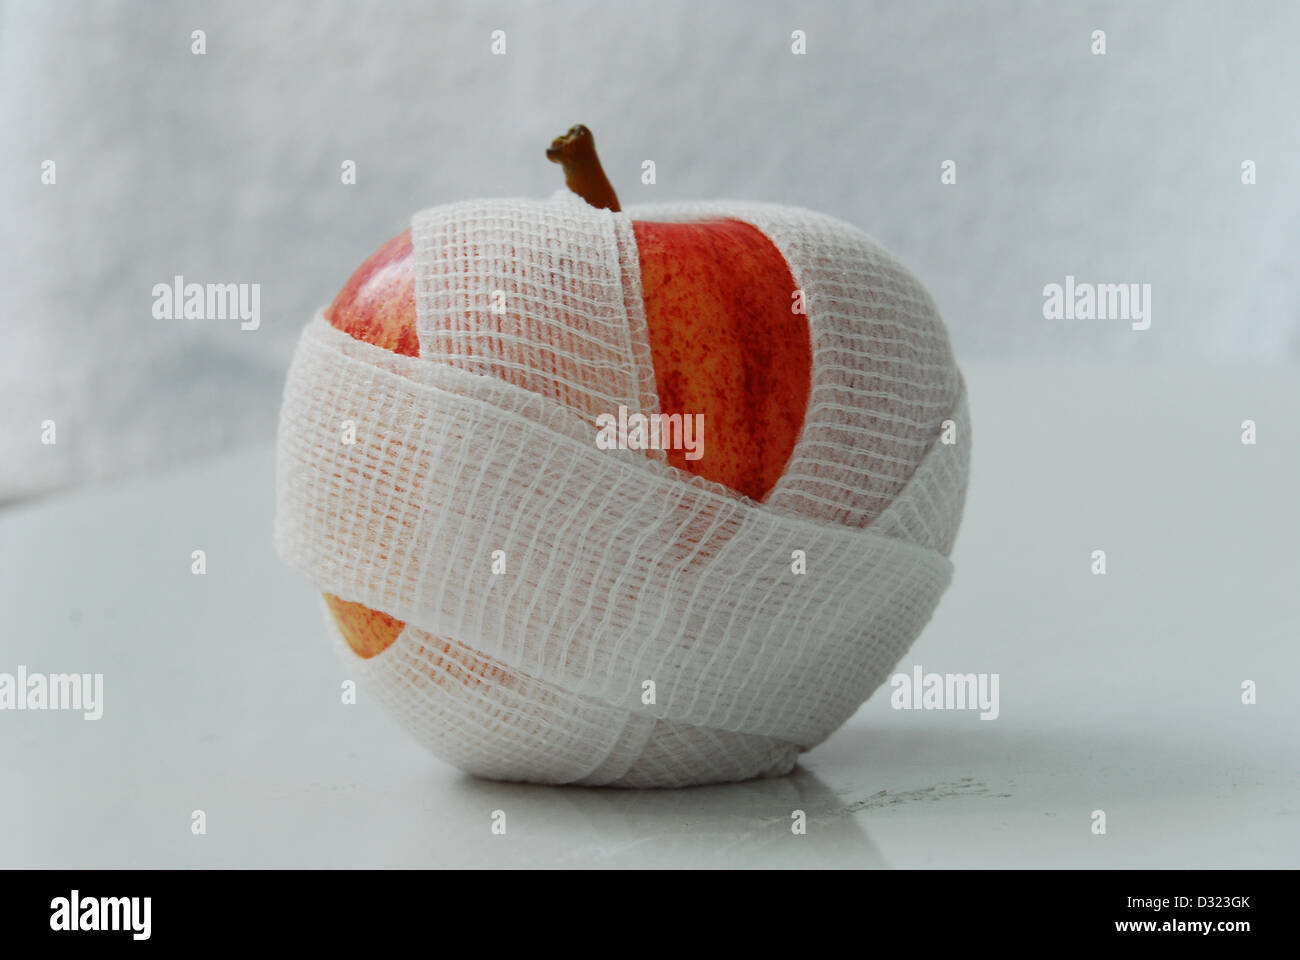 A red and yellow apple on a white background, wrapped in a white gauze bandage with an above, or birds eye view - Stock Image